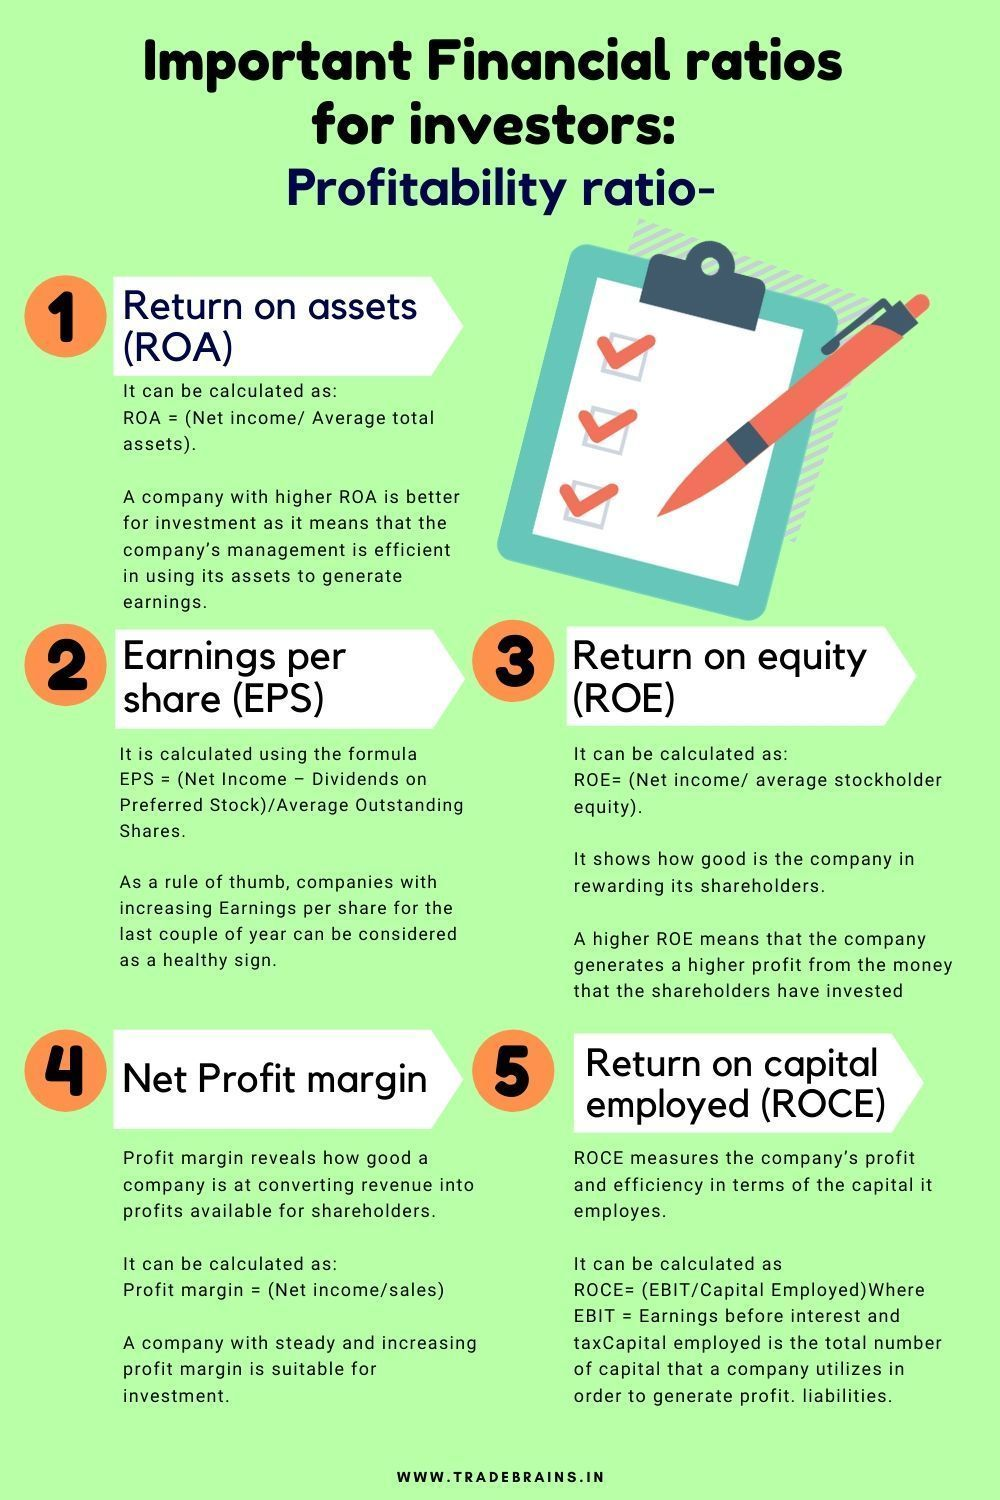 5 Simple Financial Ratios For Stock Picking Stock Market Investing Ideas Of Stock Market Investin Financial Ratio Finance Investing Money Management Advice